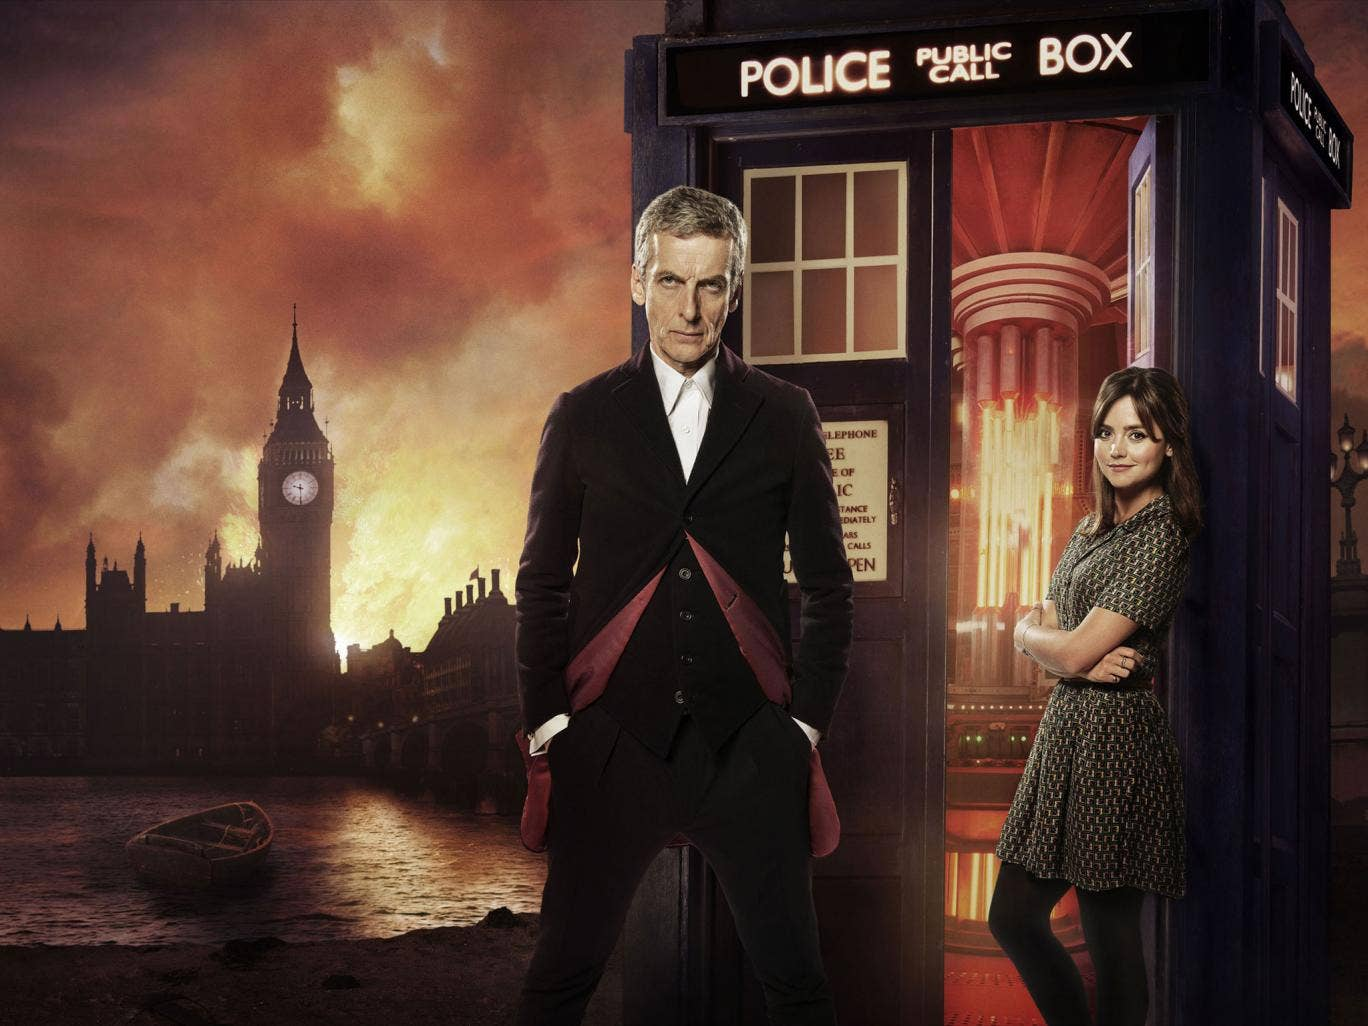 Clara and the twelfth Doctor embark on their first adventure together